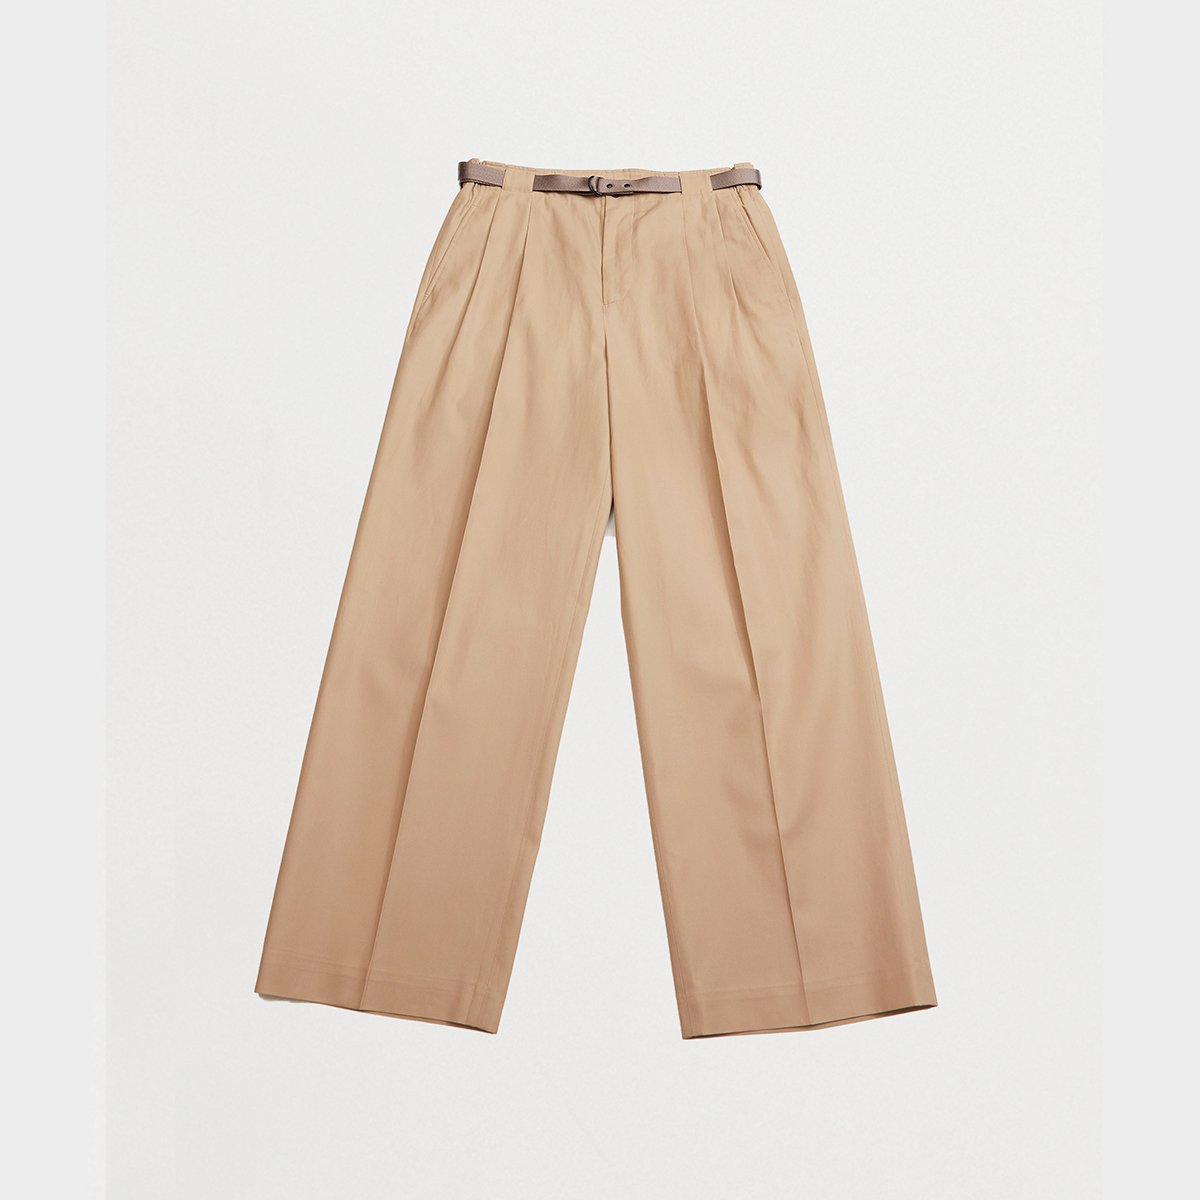 <img class='new_mark_img1' src='https://img.shop-pro.jp/img/new/icons5.gif' style='border:none;display:inline;margin:0px;padding:0px;width:auto;' />TWO TUCKS WIDE PANTS WITH BELT / BEIGE